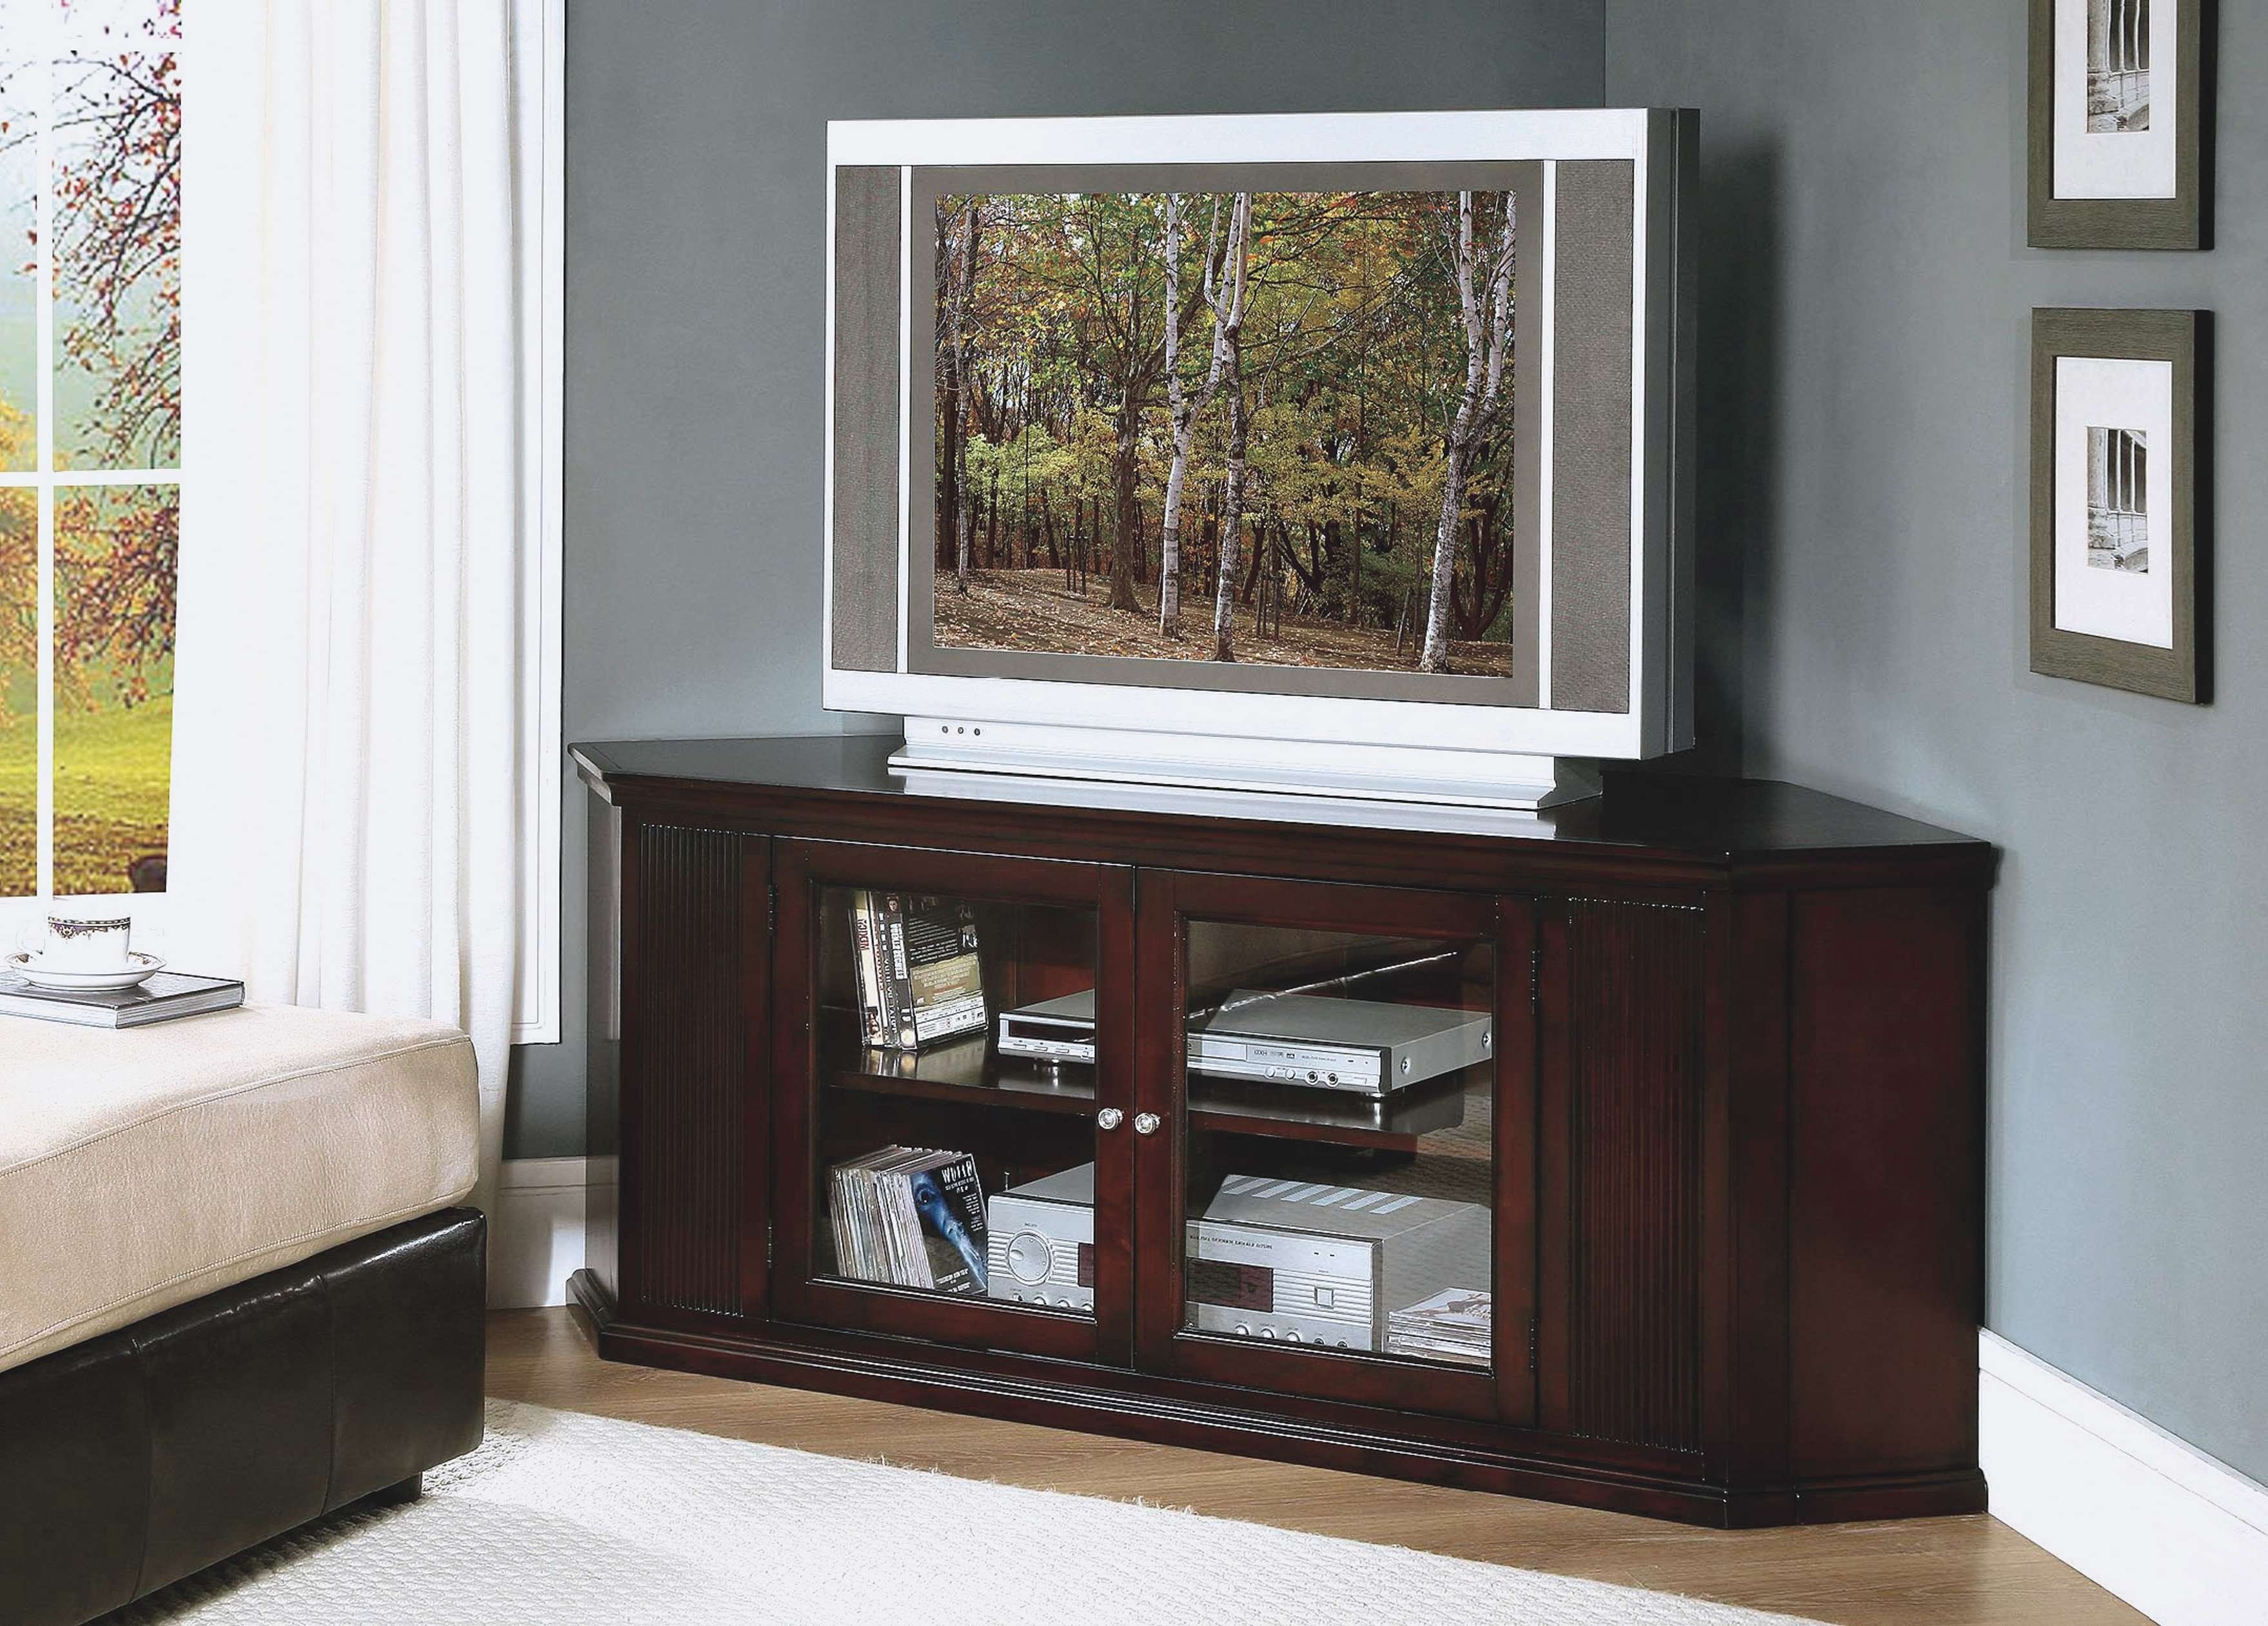 Corner Tv Cabinets For Flat Screens With Doors • Corner Cabinets Within Corner Tv Cabinets For Flat Screen (View 5 of 20)